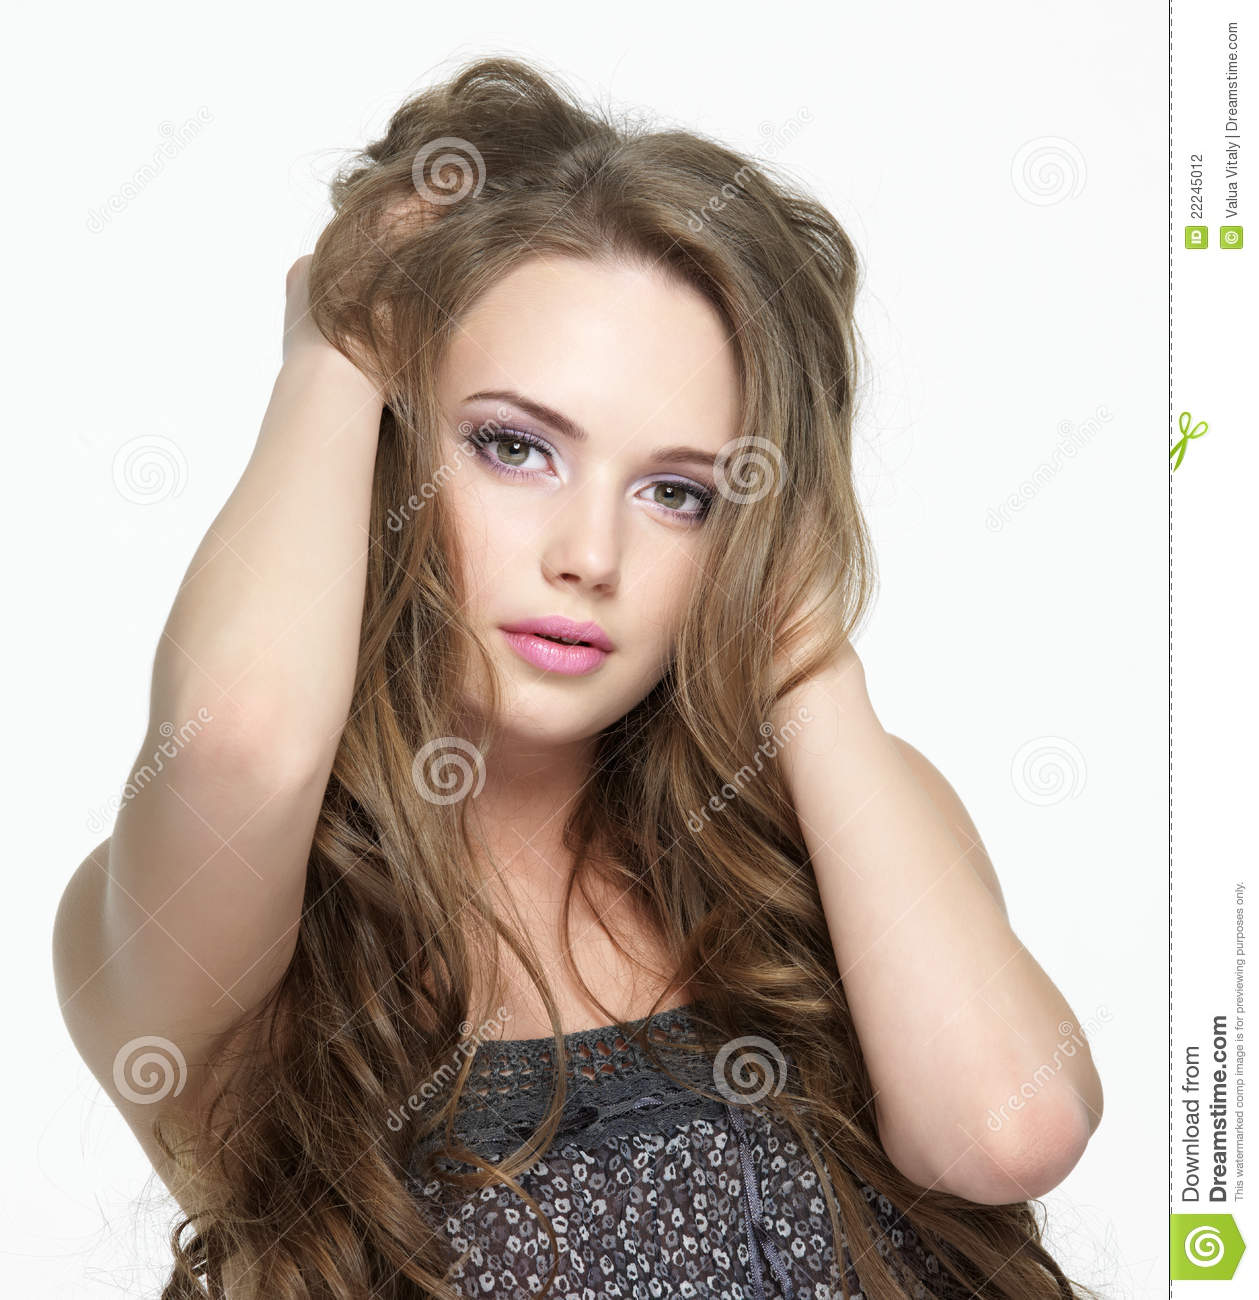 Portrait of girl with pretty face with long hairs